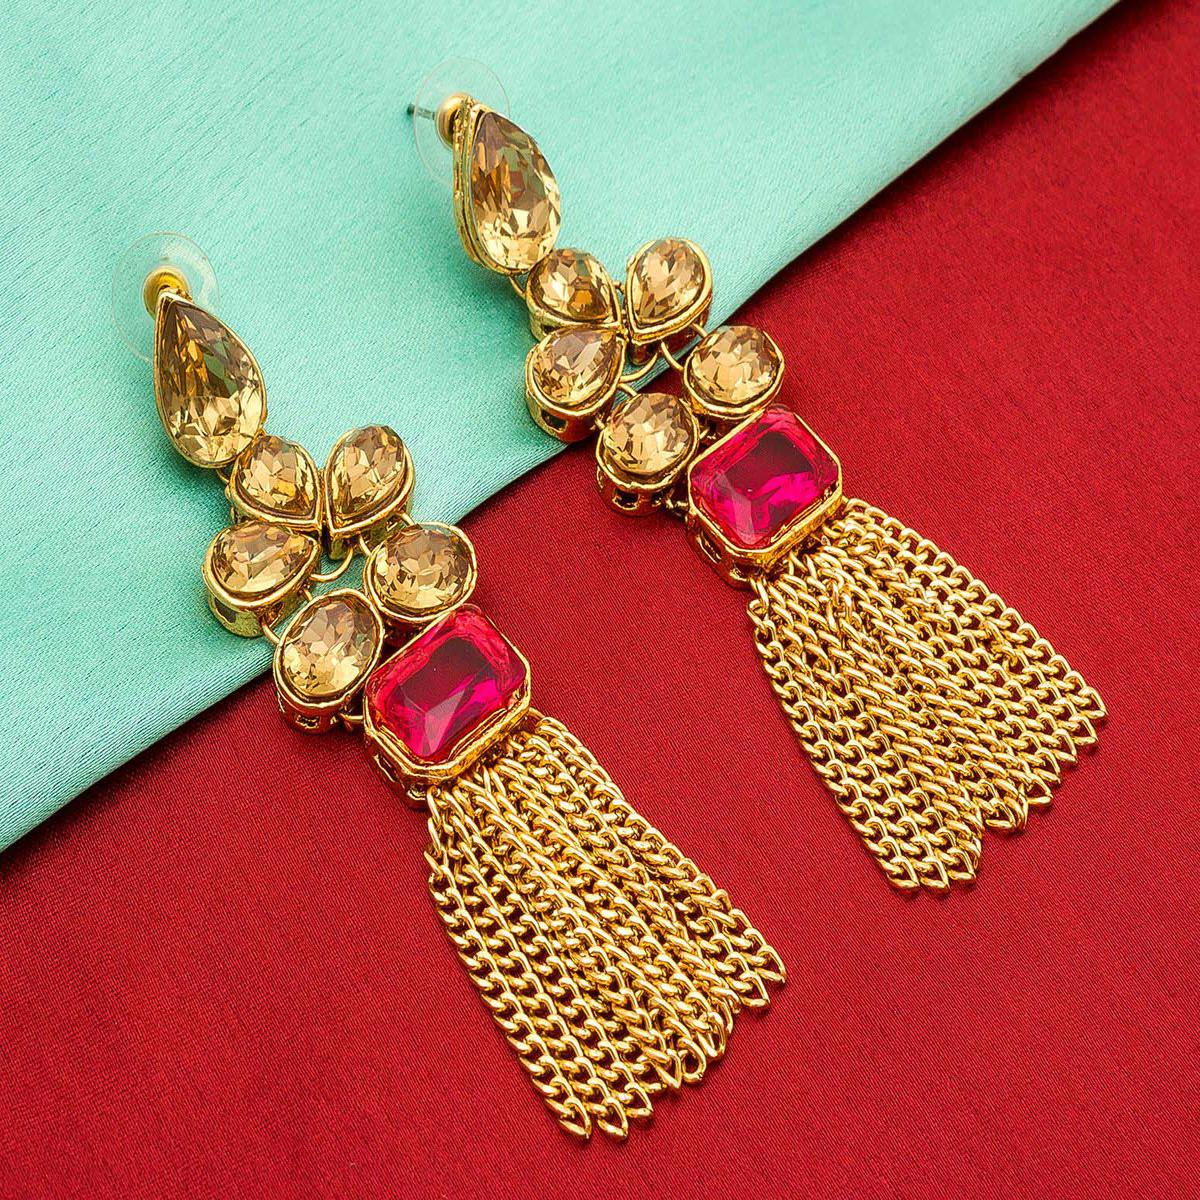 Exceptional Golden Colored Mix Metal & Stone Work Earrings Set